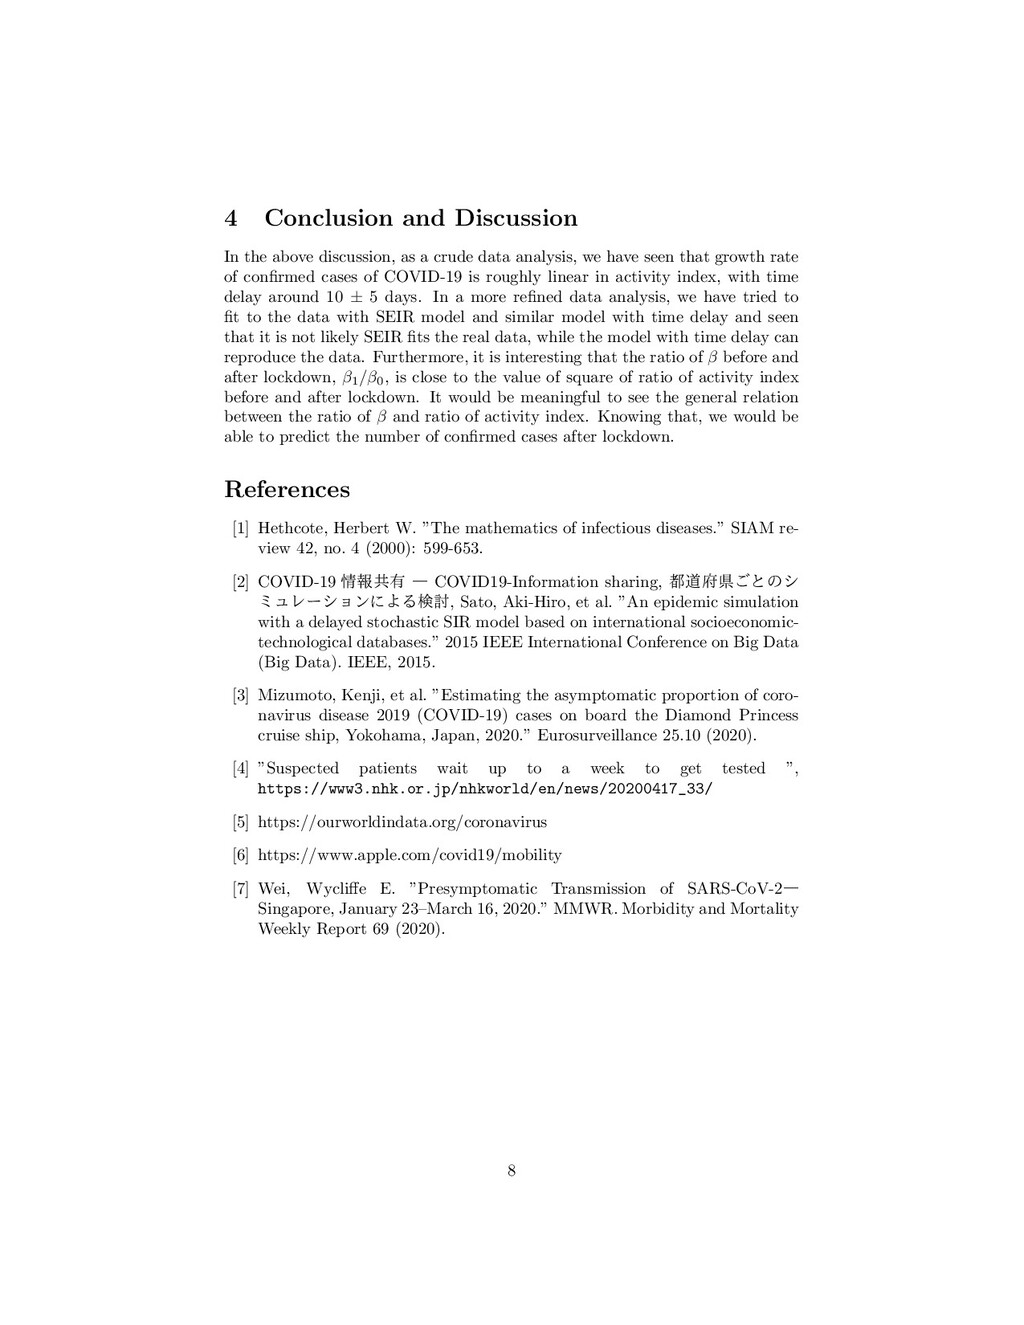 4 Conclusion and Discussion In the above discus...